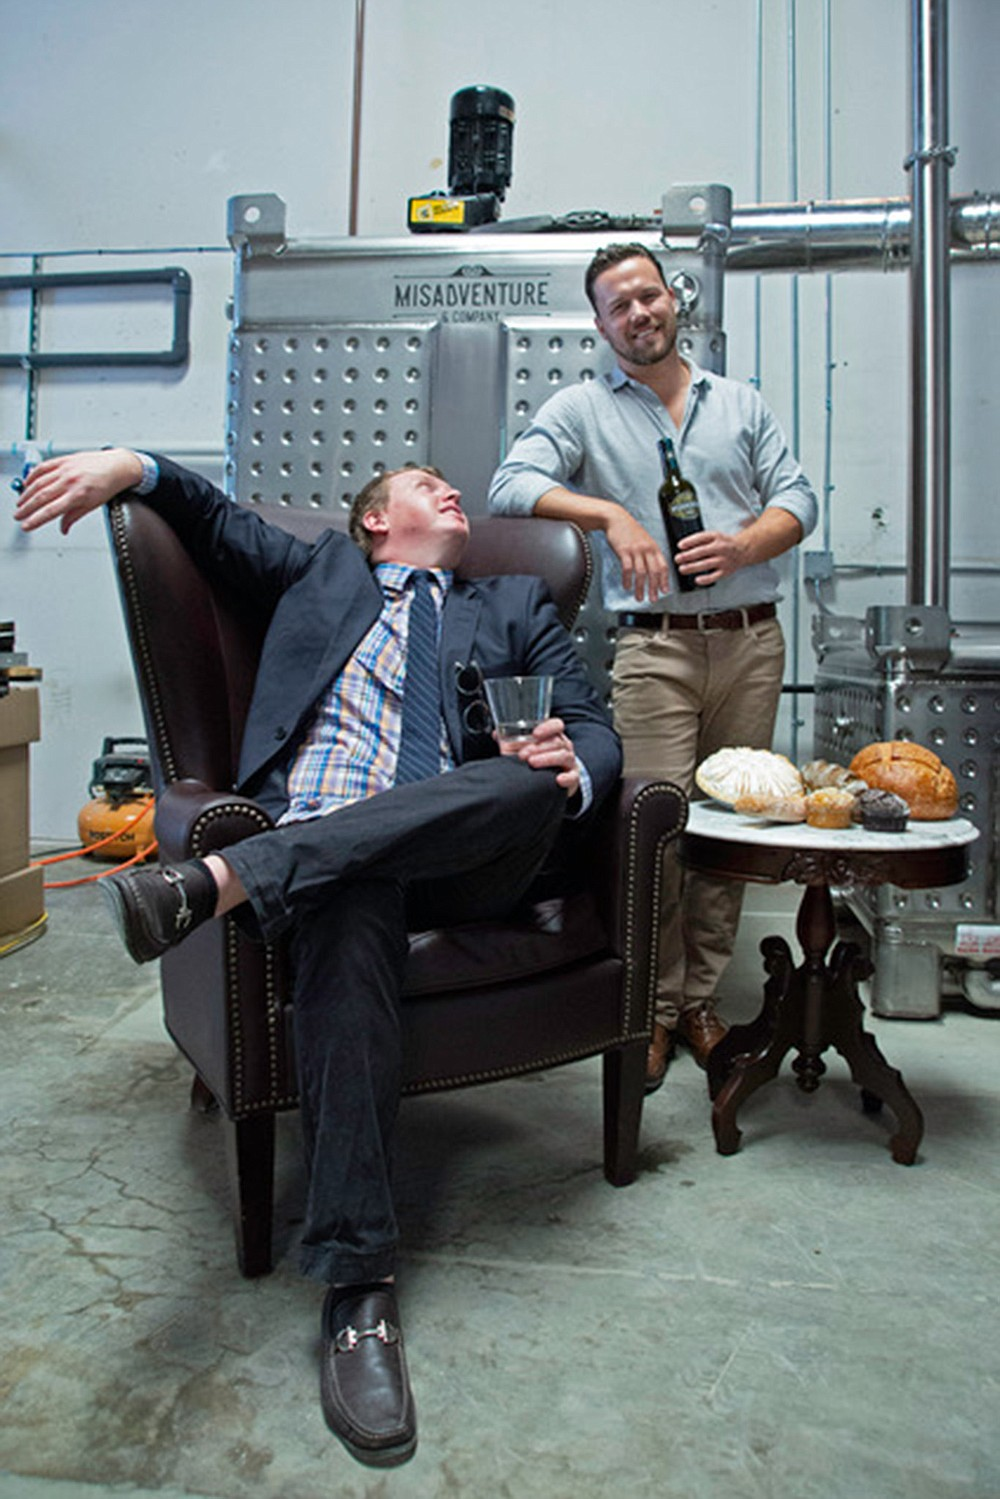 Chereskin (seated) and Rigali, creators of a craft brand that gets cooler as it gets bigger.